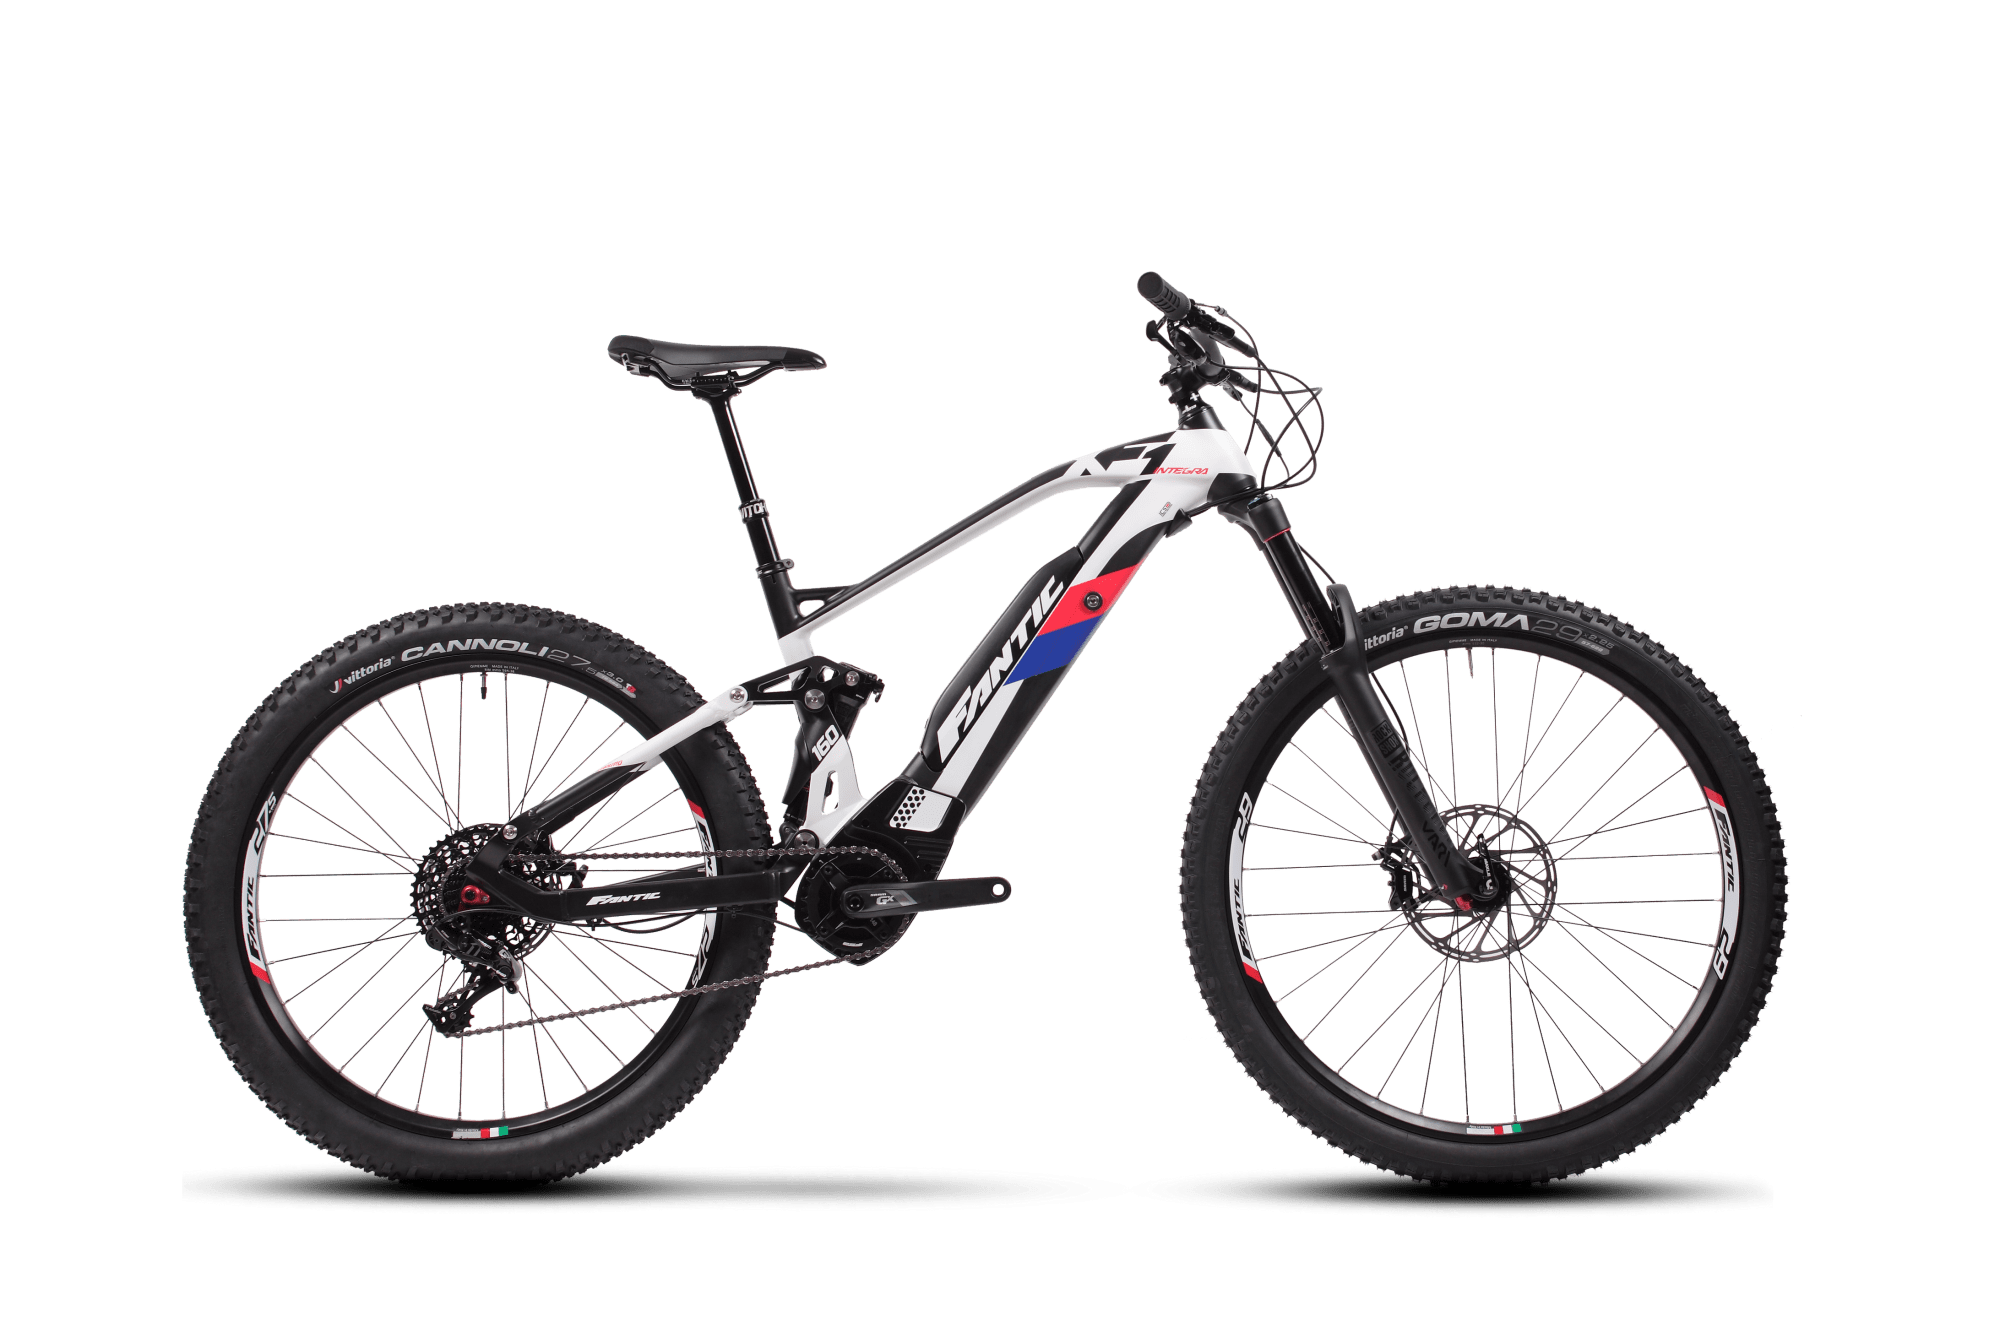 FANTIC XF1 INTEGRA ENDURO 160